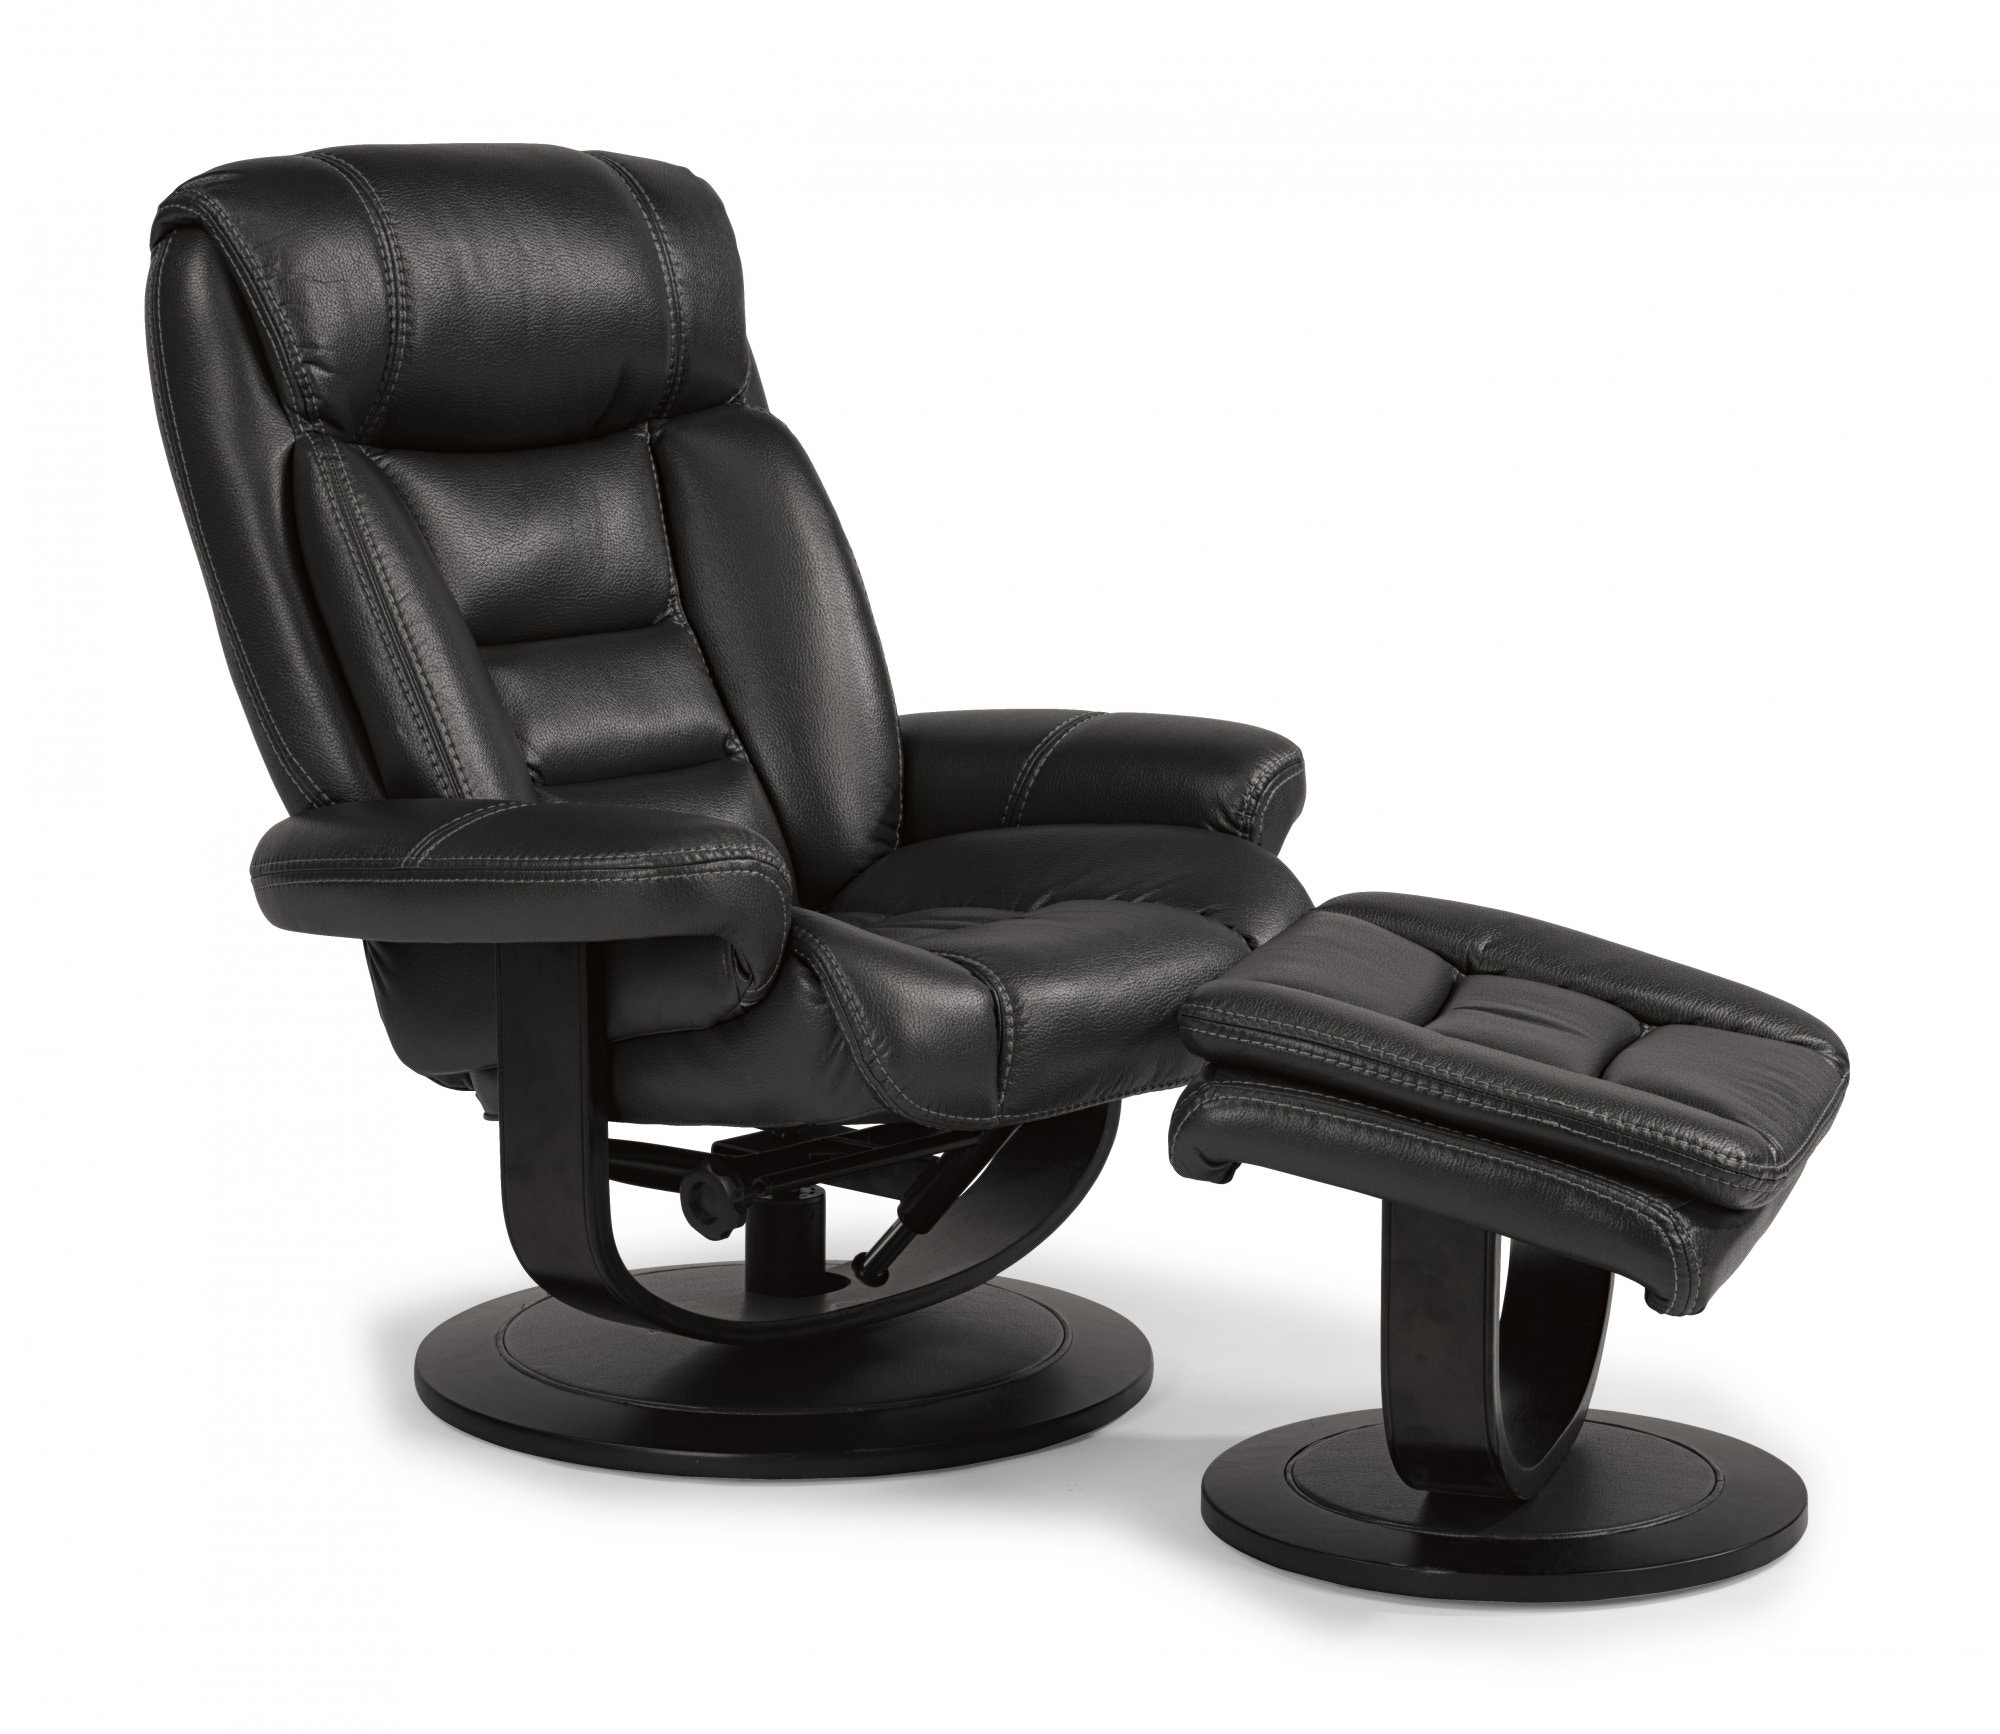 recliner vs chair with ottoman lowes adirondack flexsteel and 456860 talsma furniture living room at